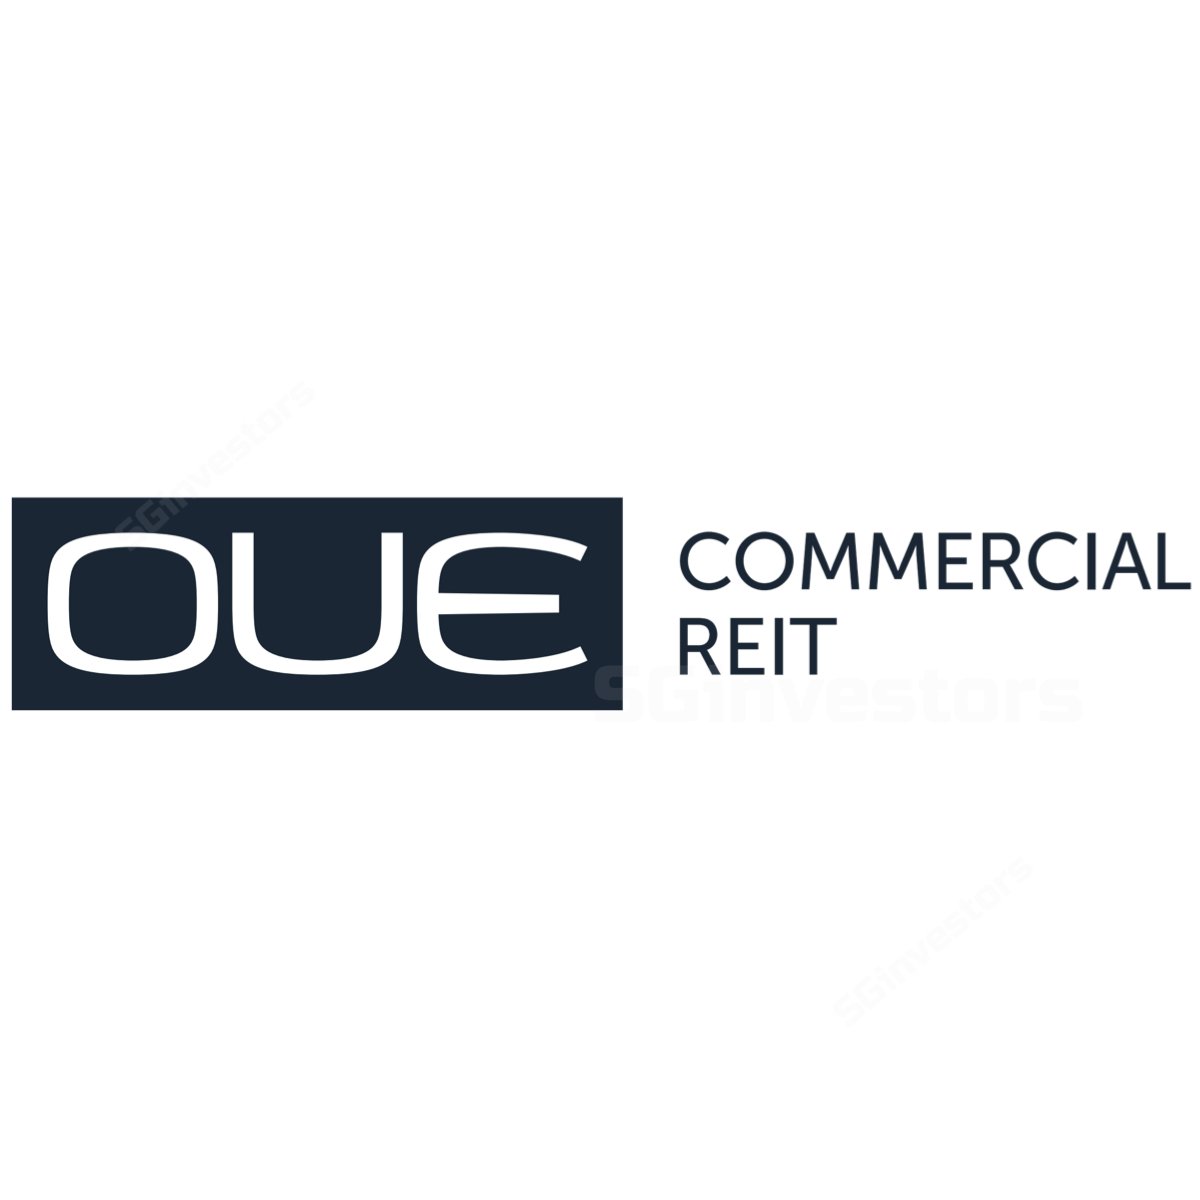 OUE Commercial REIT (OUECT SP) - DBS Vickers 2017-08-03: Continued Improvement In Occupancy